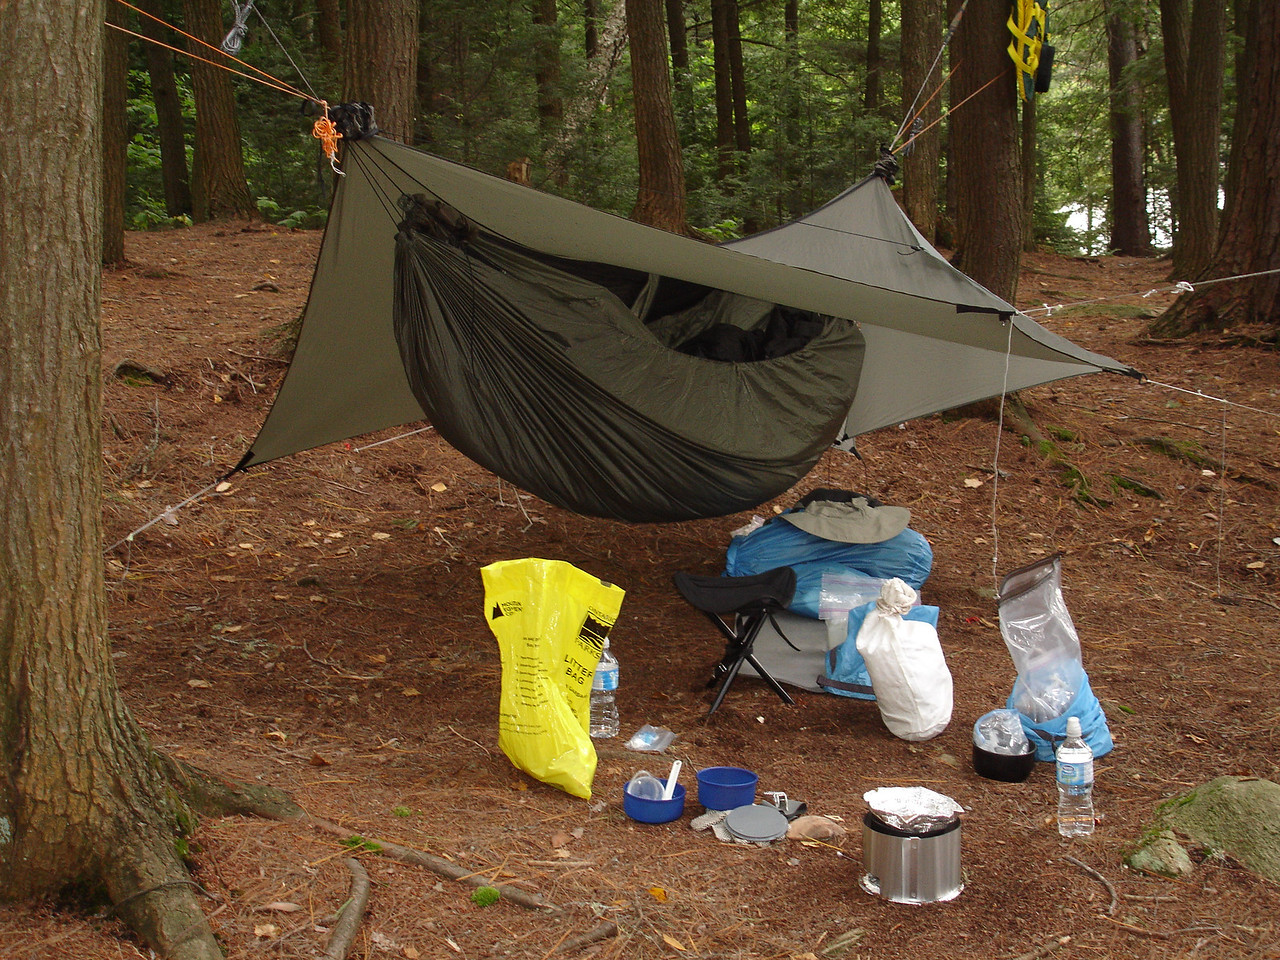 The day's agenda: leisurely breakfast, try out my new tarp doors, and head back down the portage to Ragged Lake.